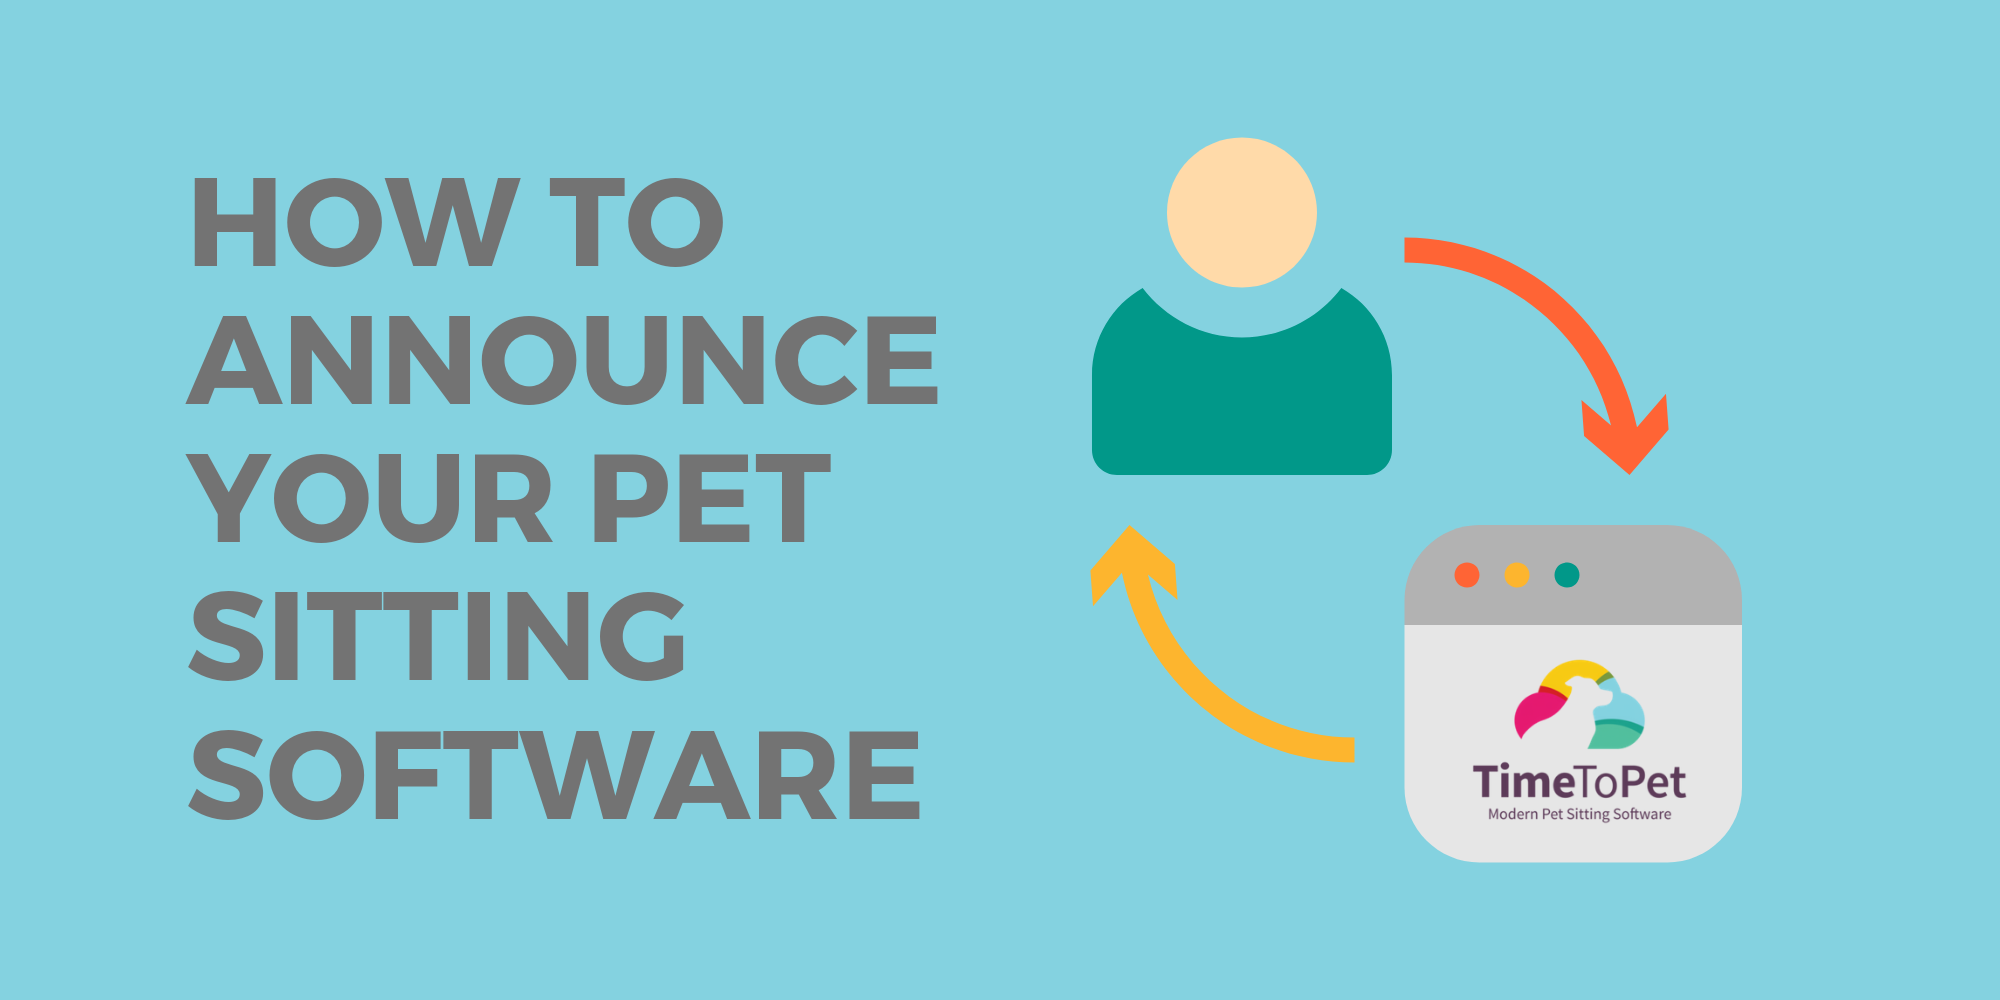 How-to-Announce-Your-Pet-Sitting-Software.png